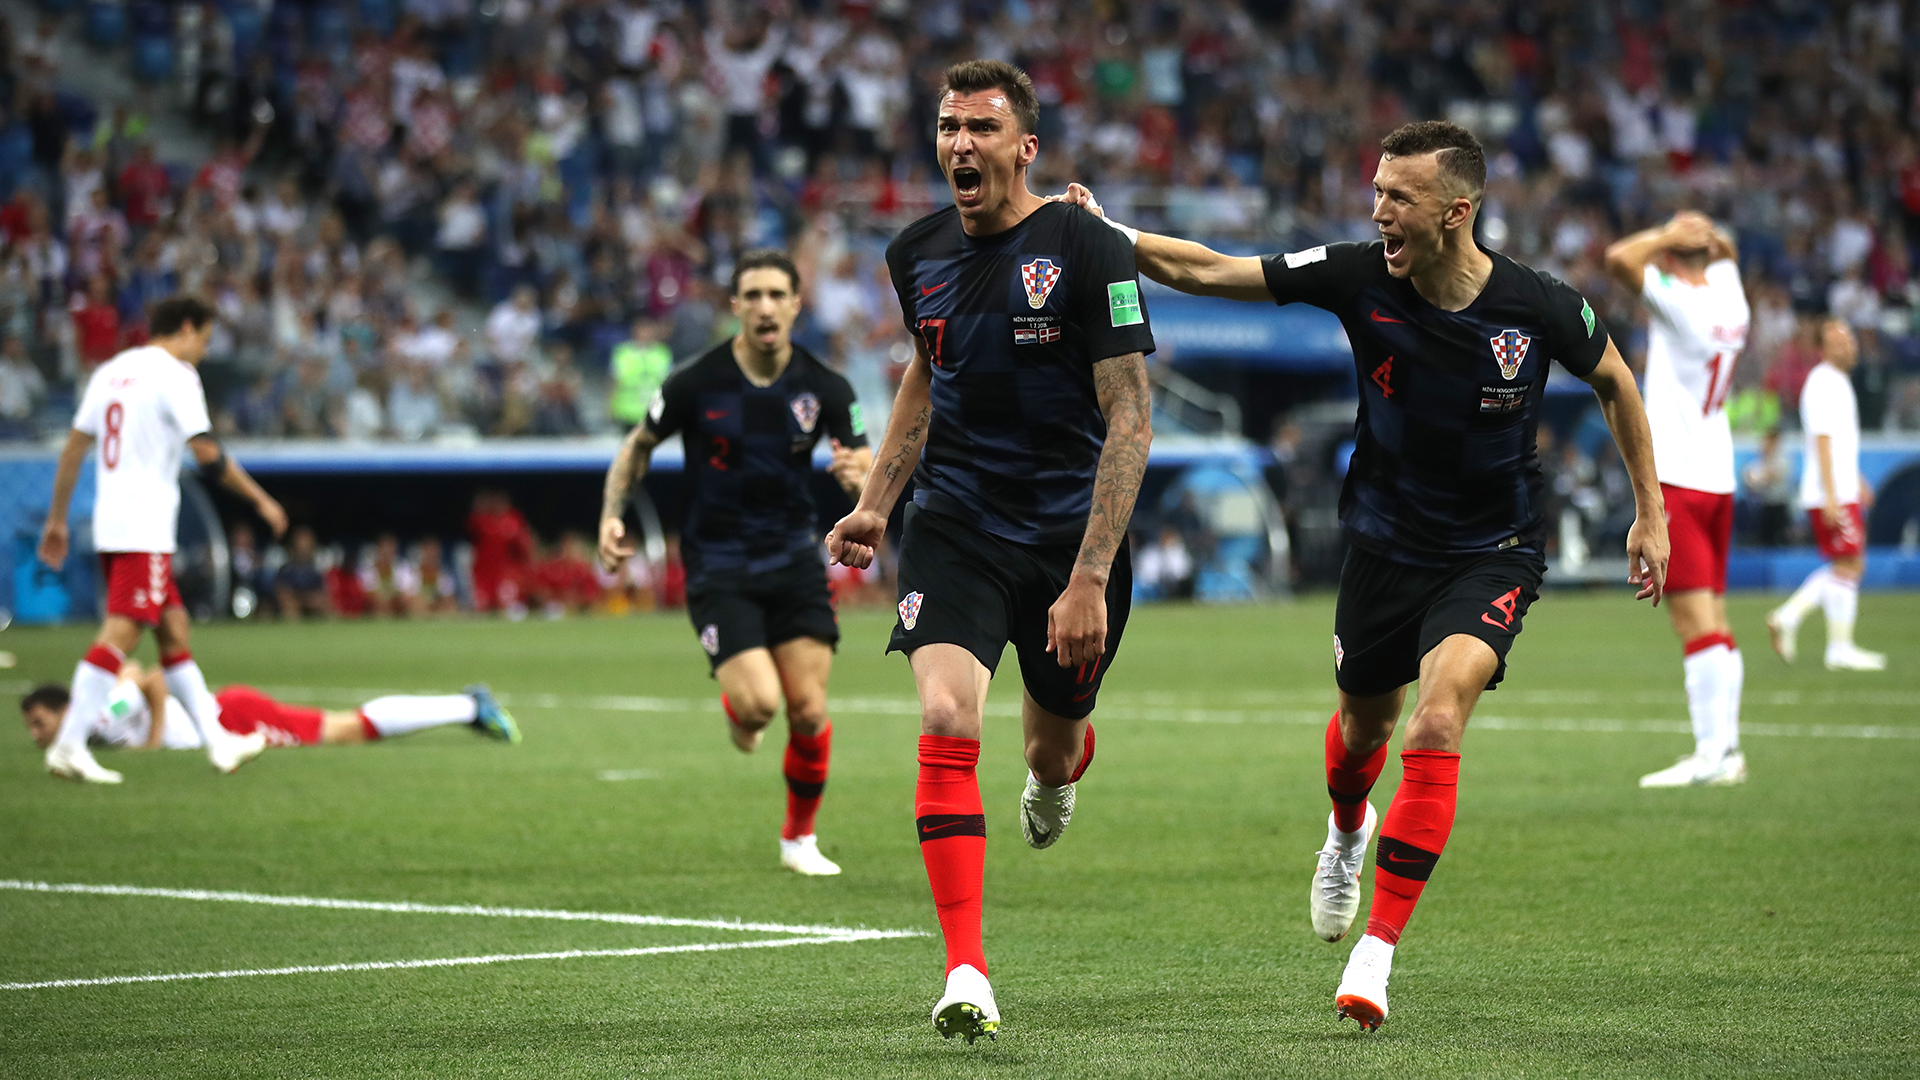 Croatia ends Russia's run, advances to WC semifinals